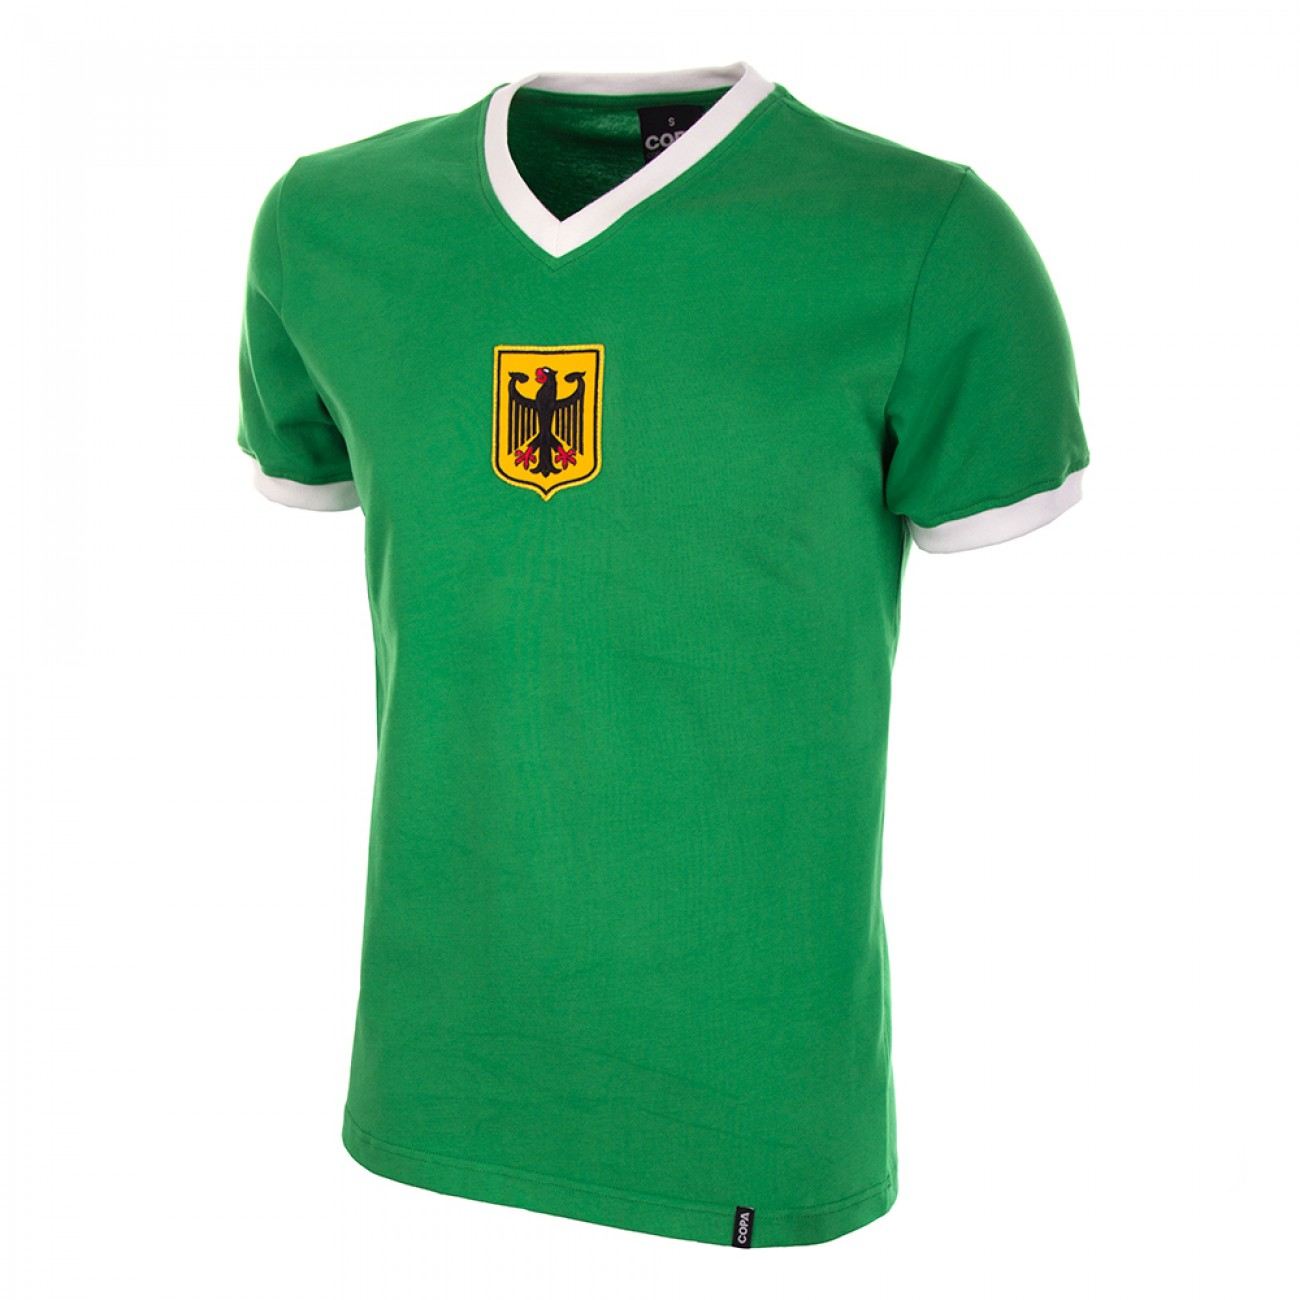 dfb gr nes retro trikot deutschland weltmeister. Black Bedroom Furniture Sets. Home Design Ideas